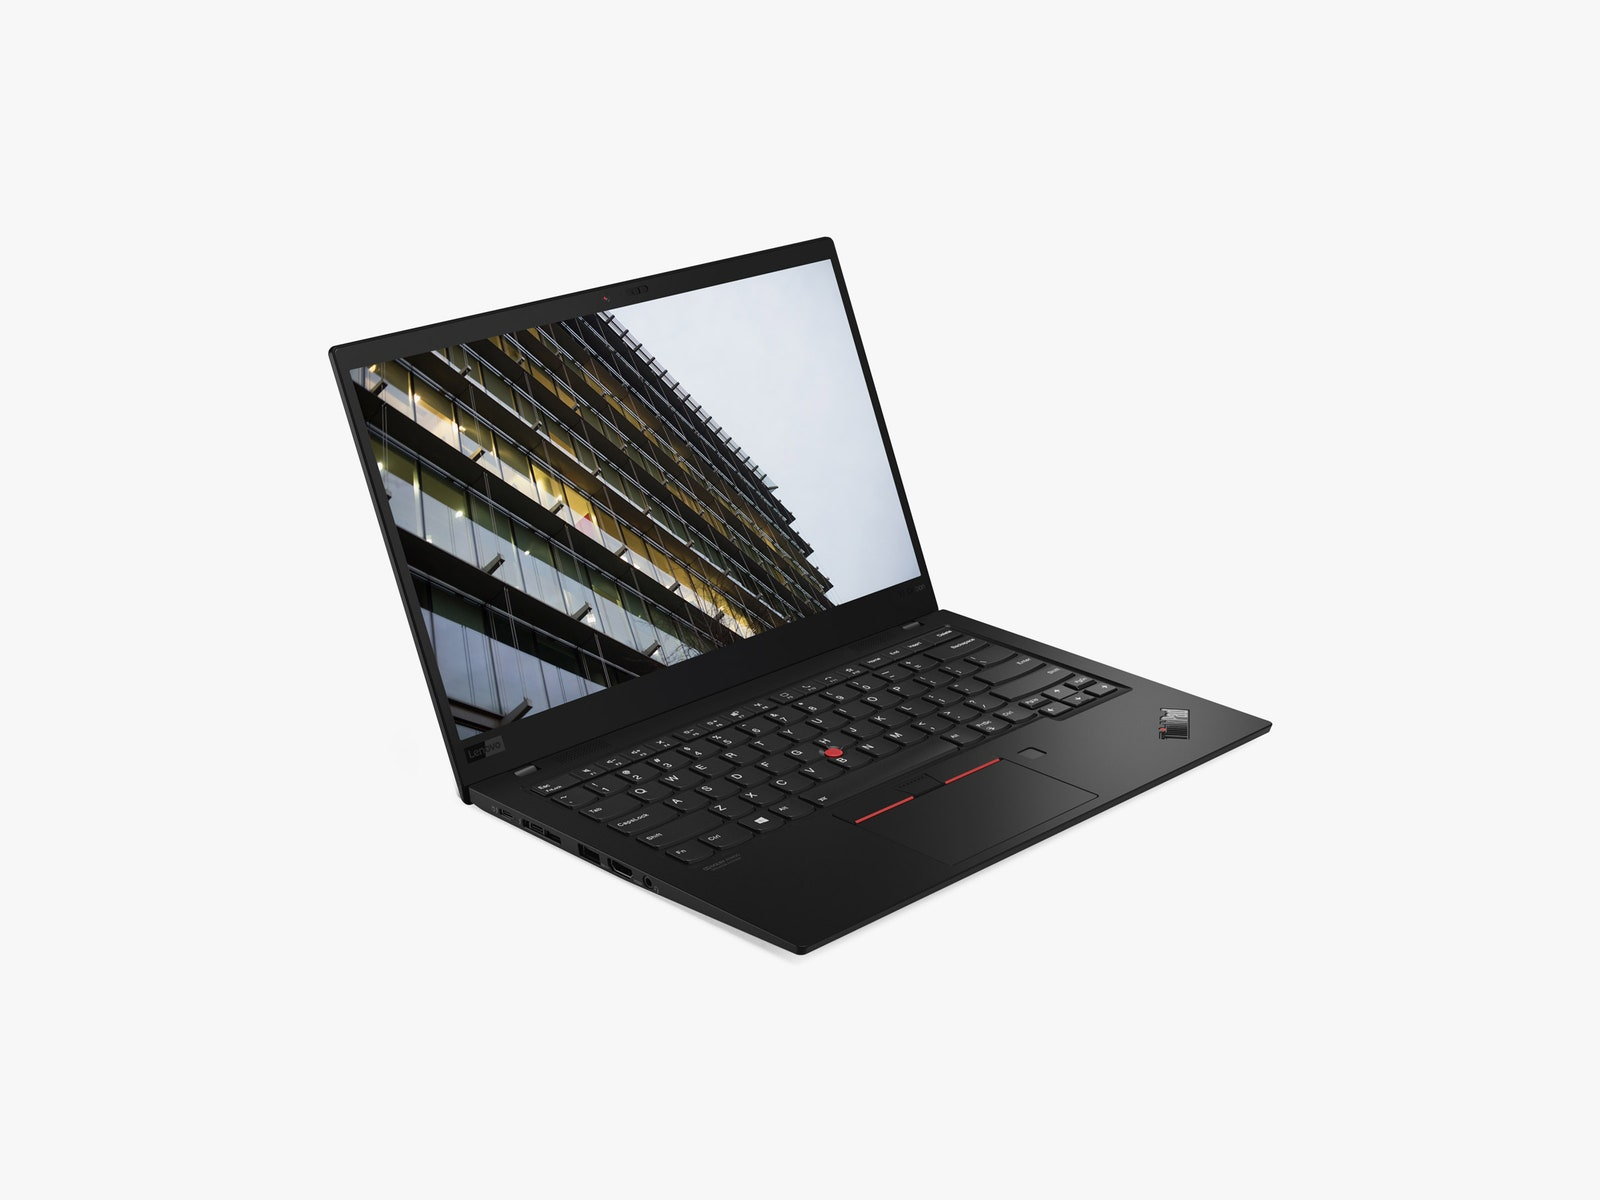 Lenovo ThinkPad X1 Carbon Review A TopNotch Laptop